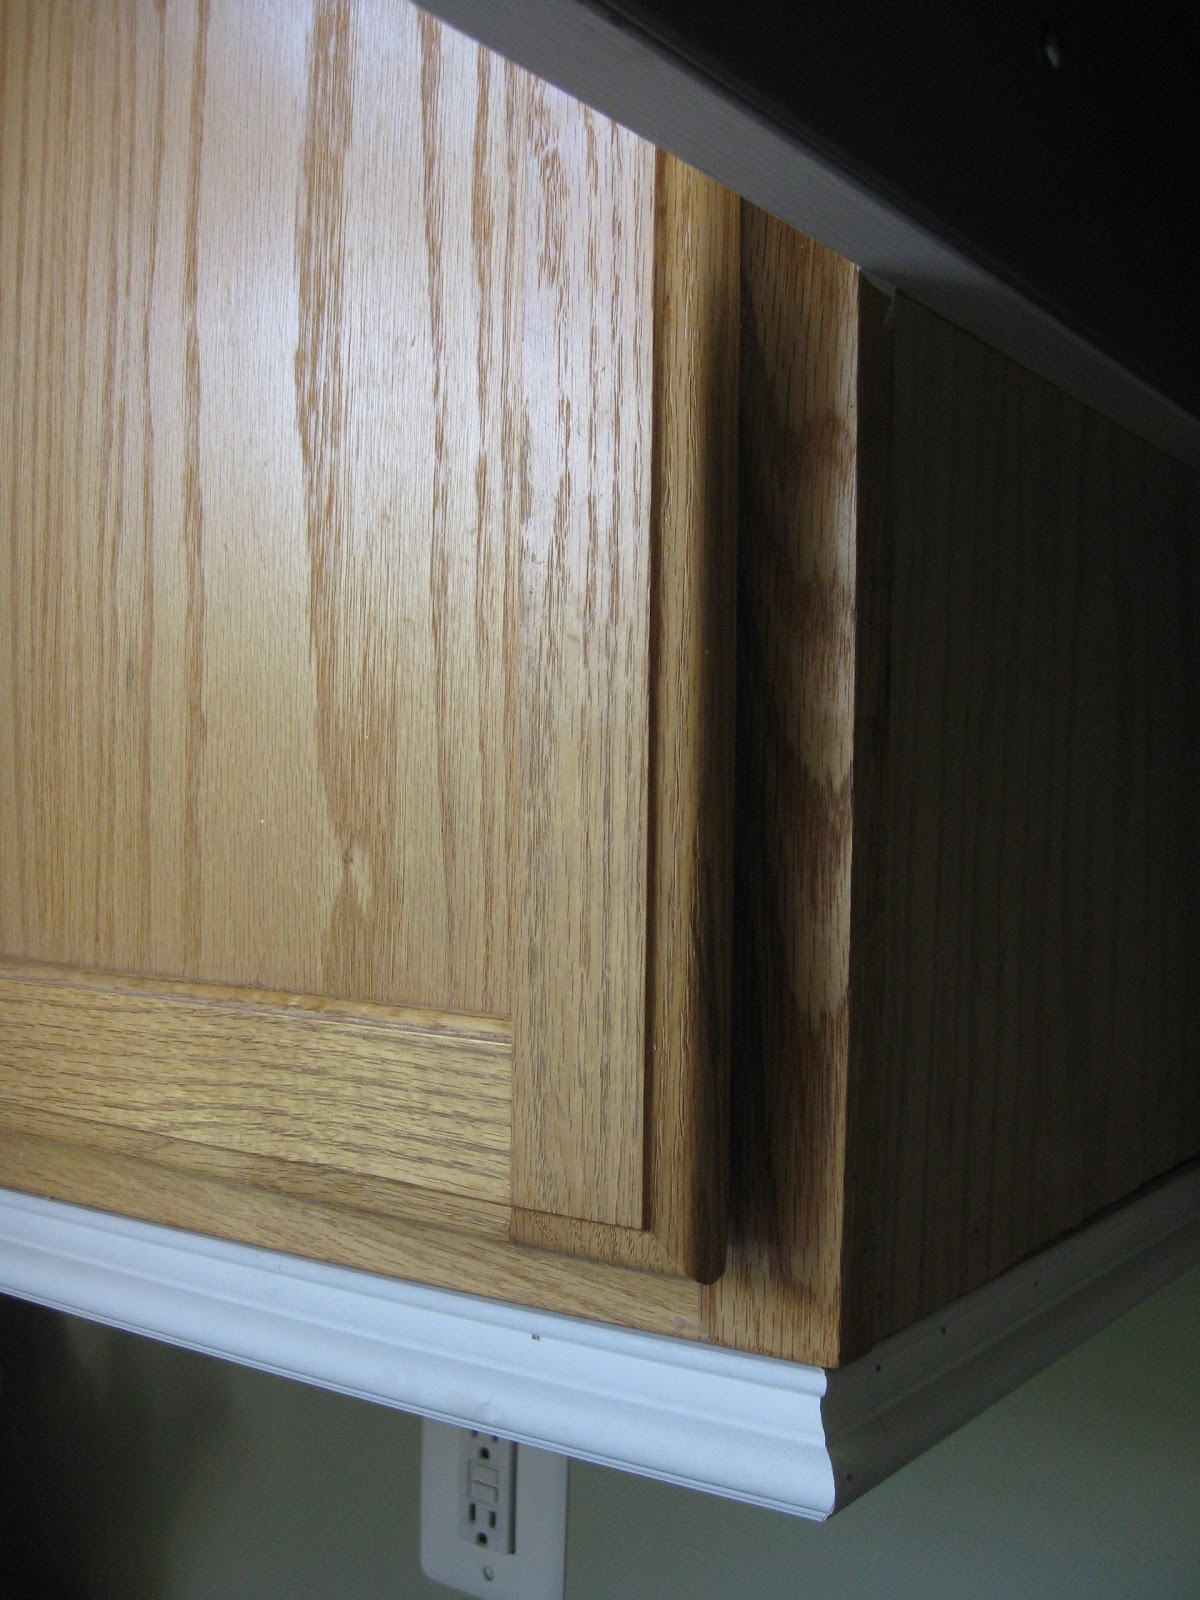 Bottom Kitchen Cabinets Cabinet Moulding Adding Moldings To Your Remodelando La Casa